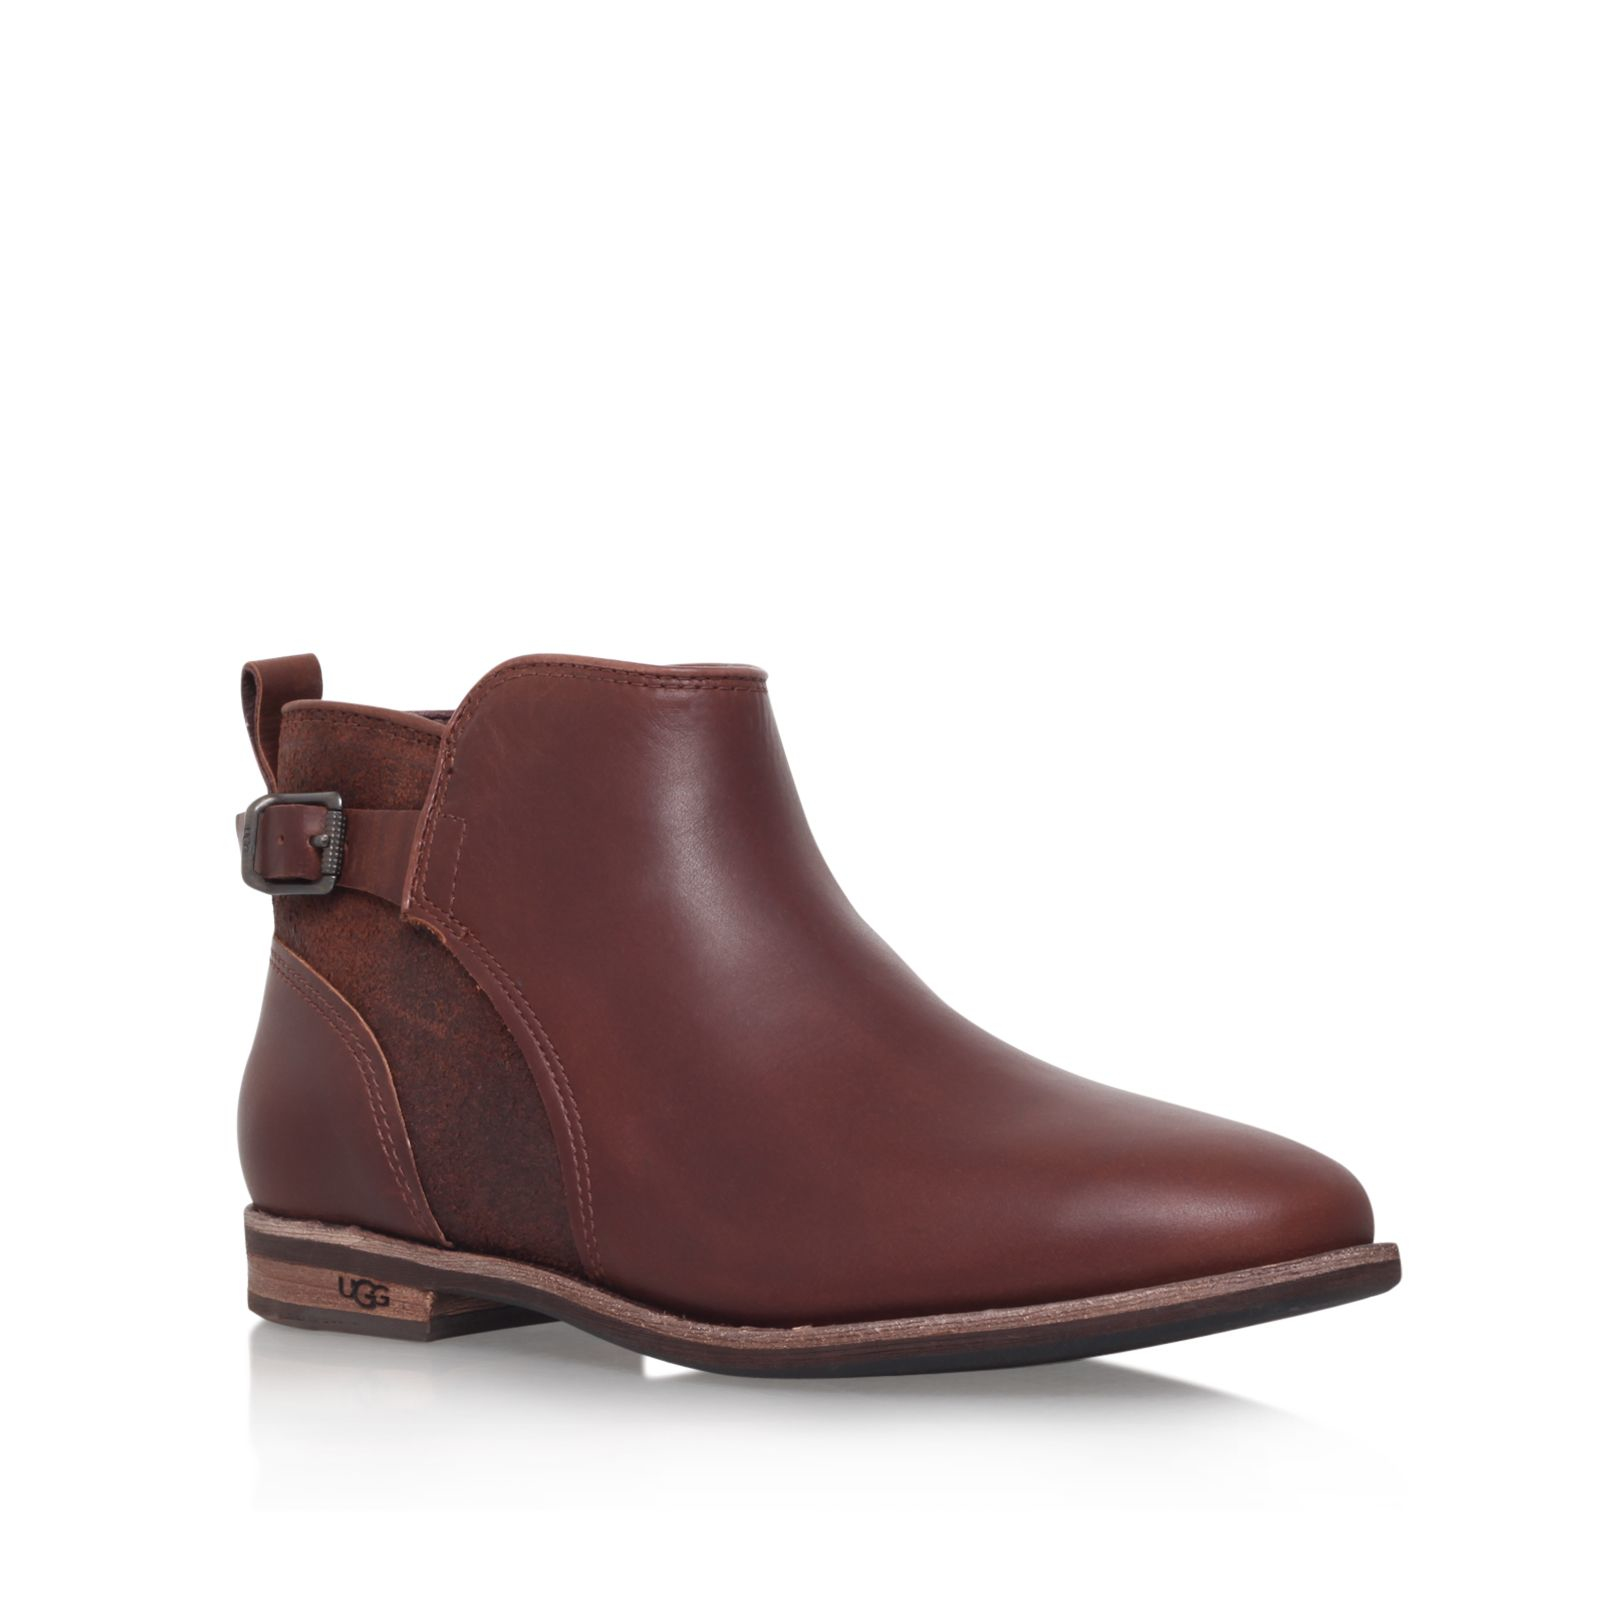 Ugg Demi Flat Ankle Boots in Brown | Lyst